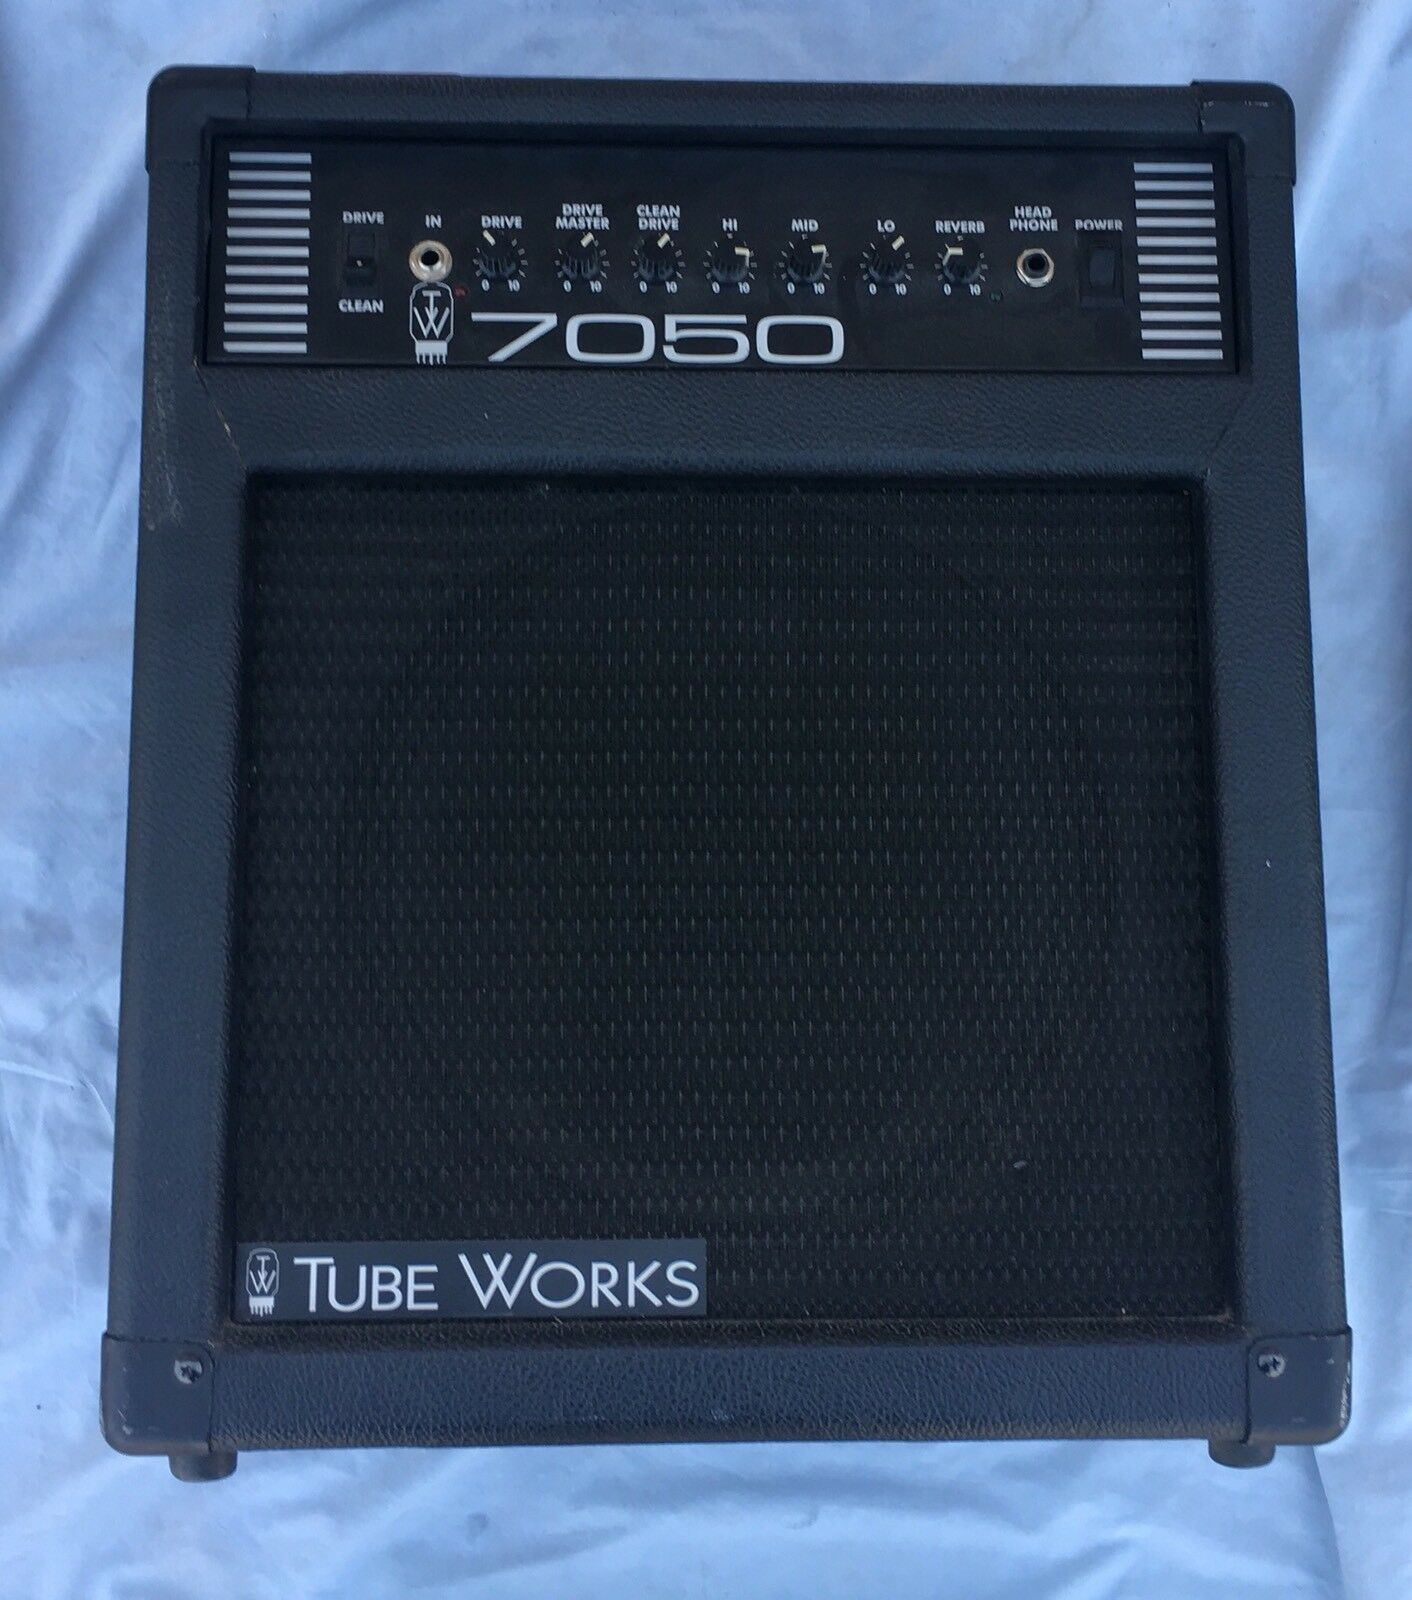 Tube Works 7050 Combo Amplifier  BK Butler USA Made 12AX7 Preamp